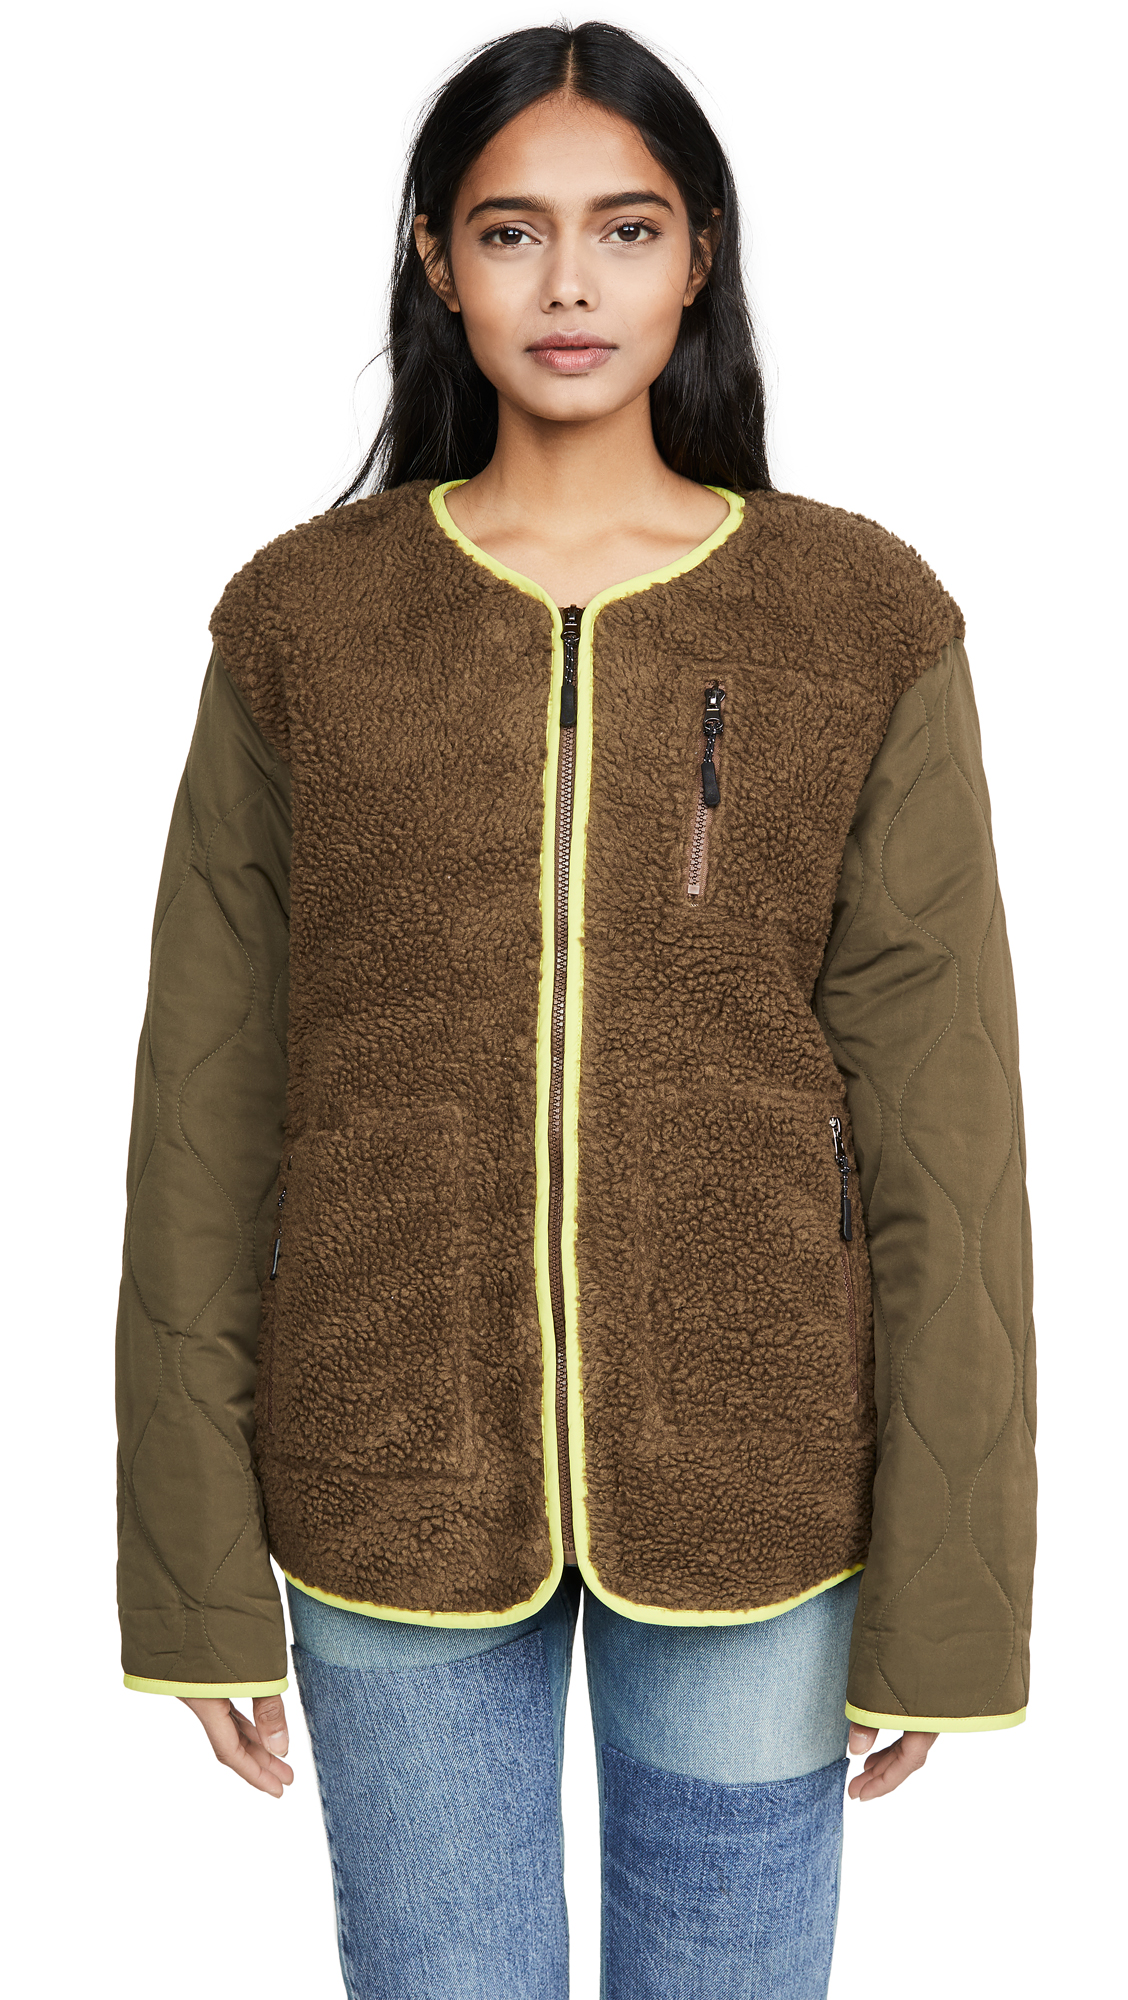 Buy J.O.A. Khaki Jacket online beautiful J.O.A. Jackets, Coats, Down Jackets